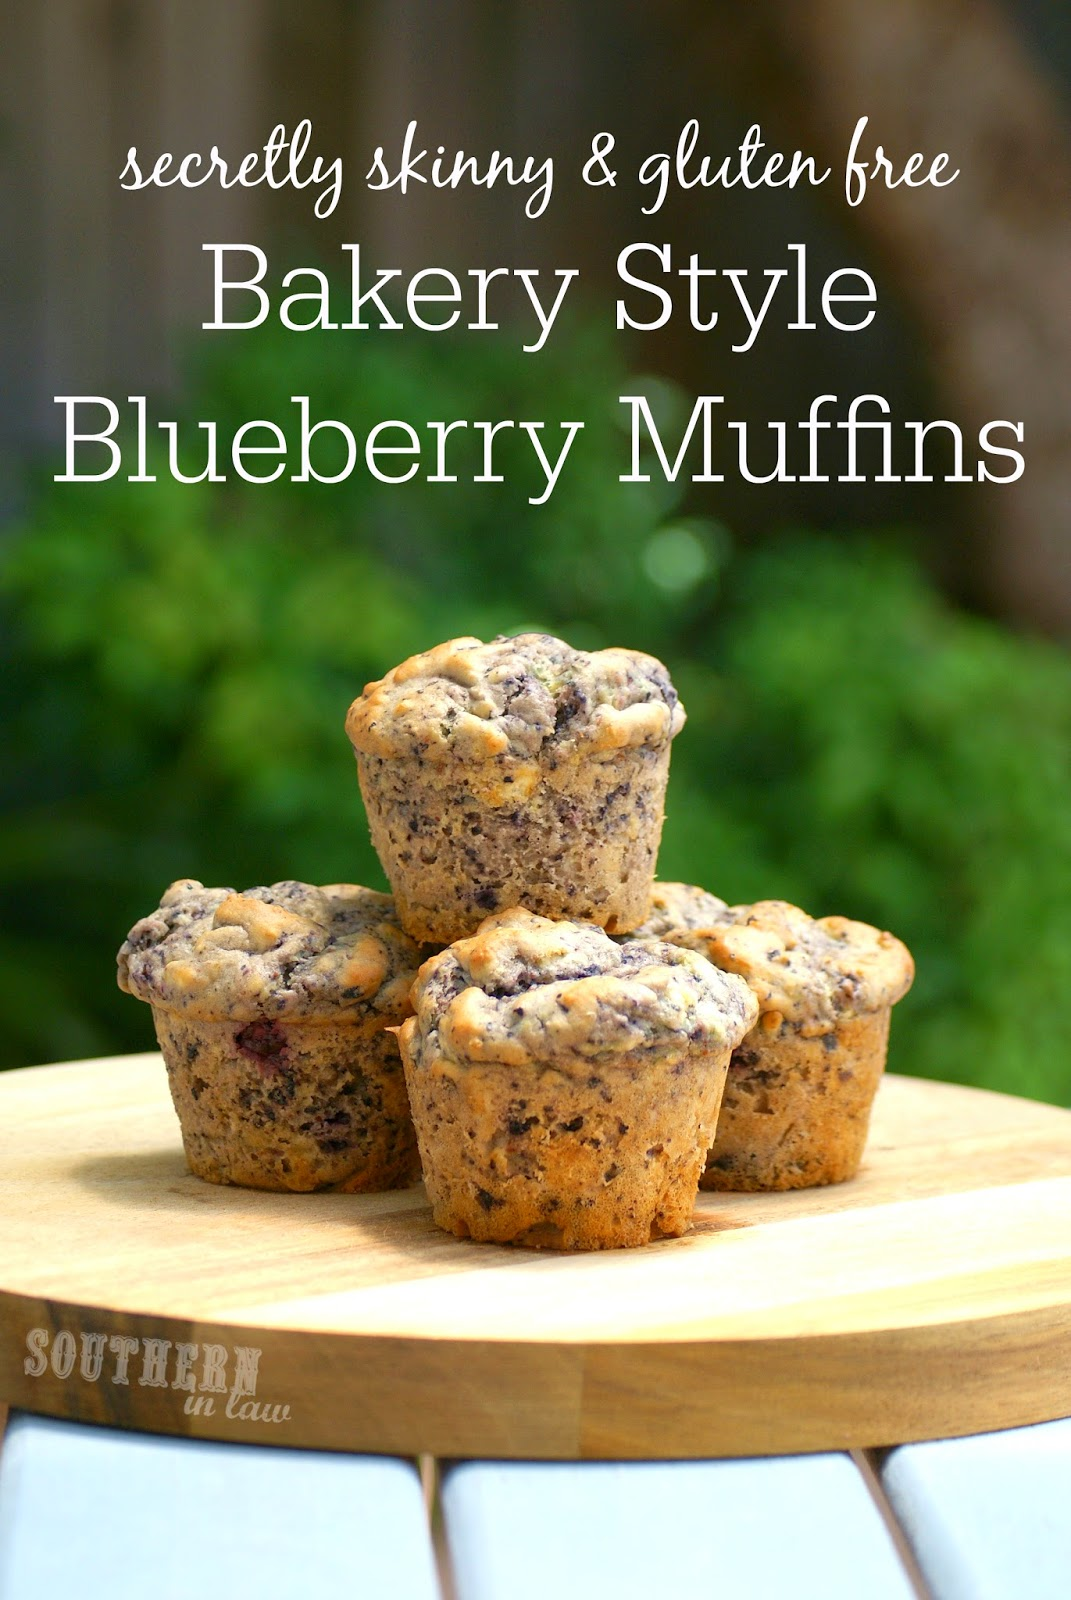 Healthy Bakery Style Blueberry Muffin Recipe - low fat, gluten free ...